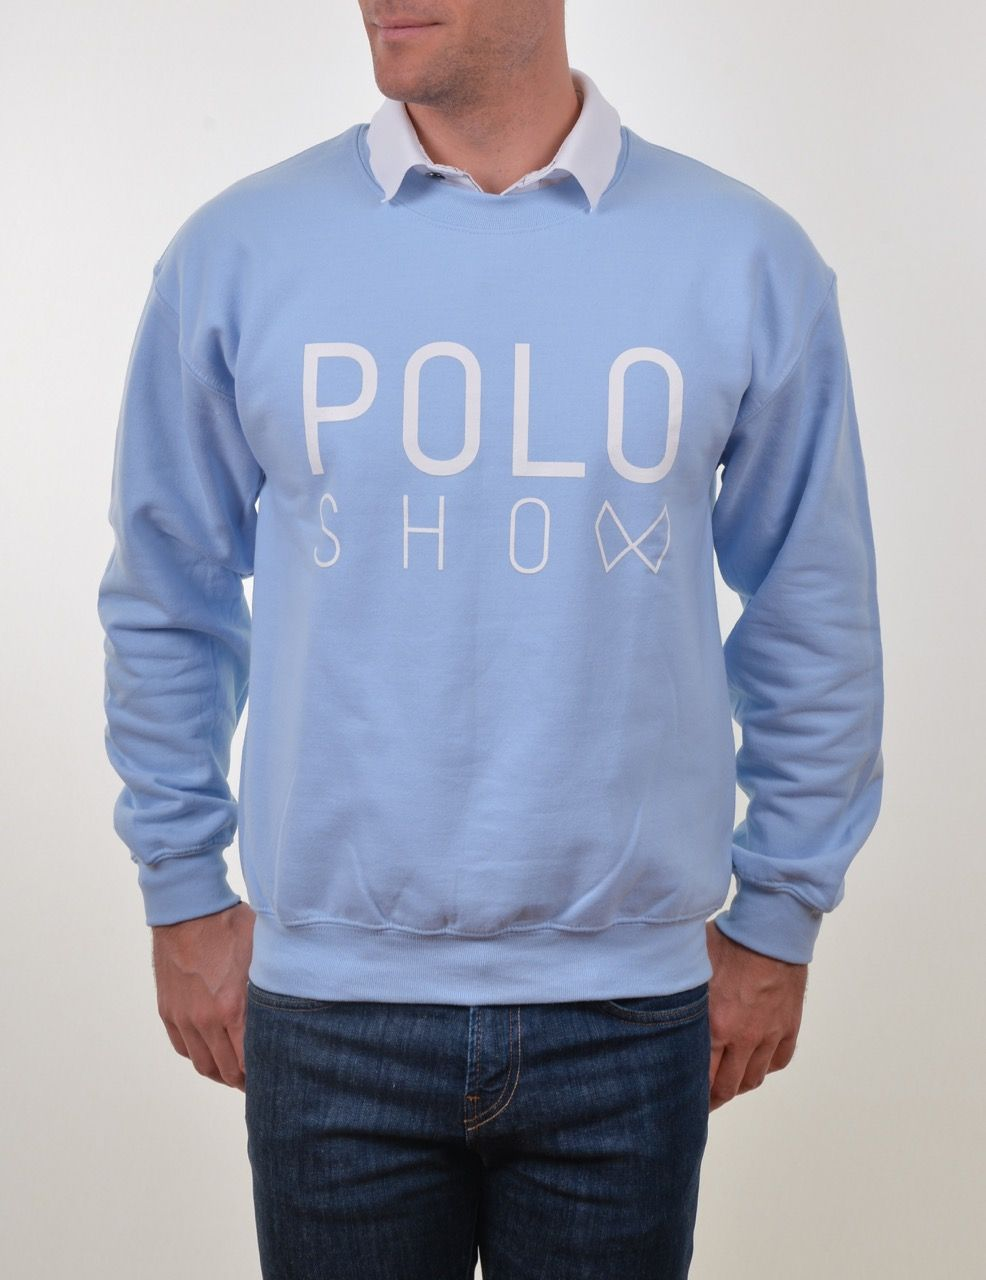 Poloshow Sweater lightblue 4